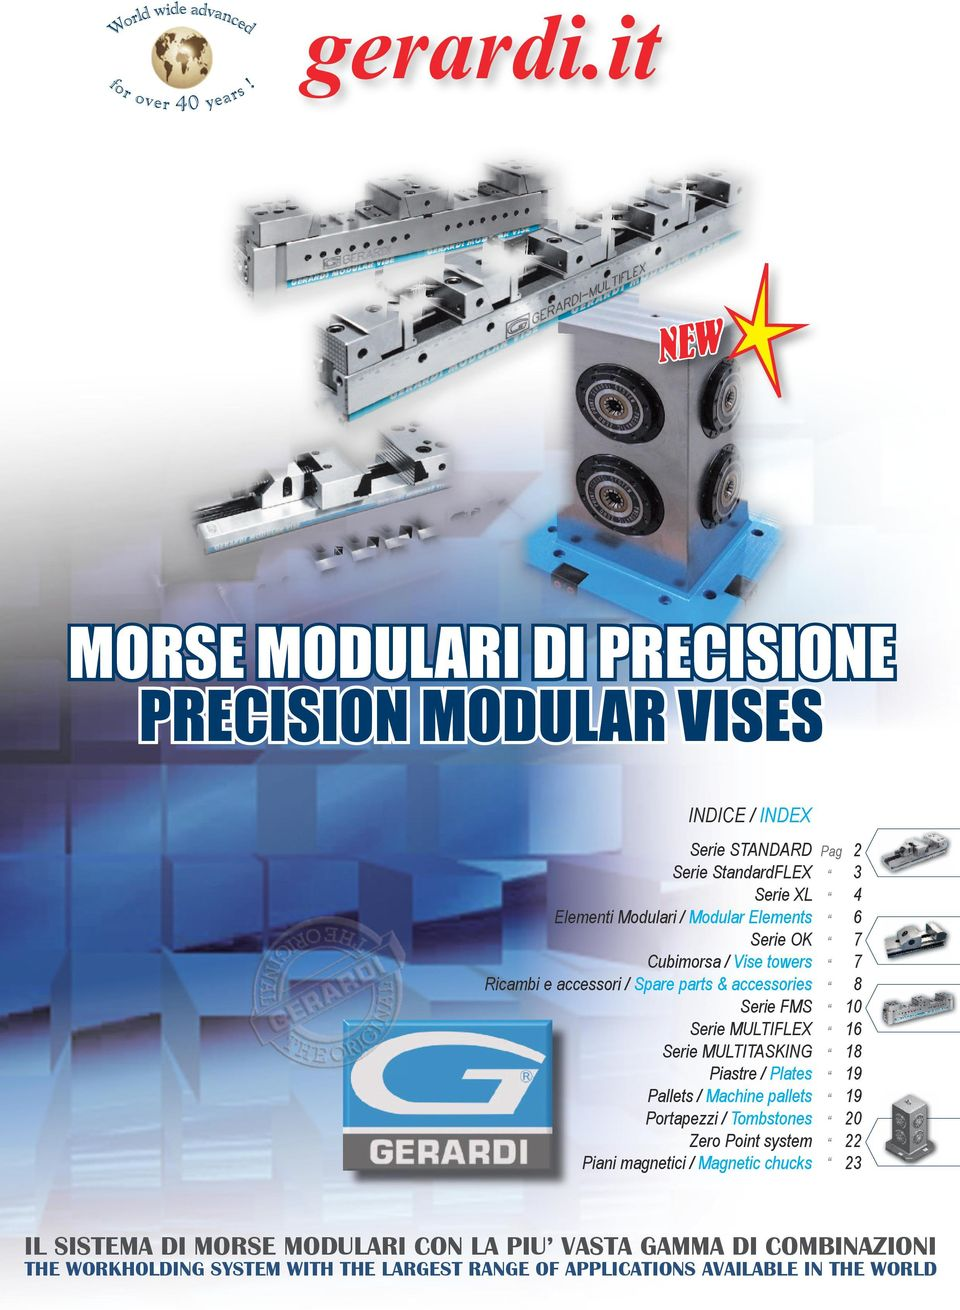 ubimorsa / Vise towers Ricambi e accessori / Spare parts & accessories Serie FMS Serie MULTIFLEX Serie MULTITSKING Piastre / Plates Pallets /